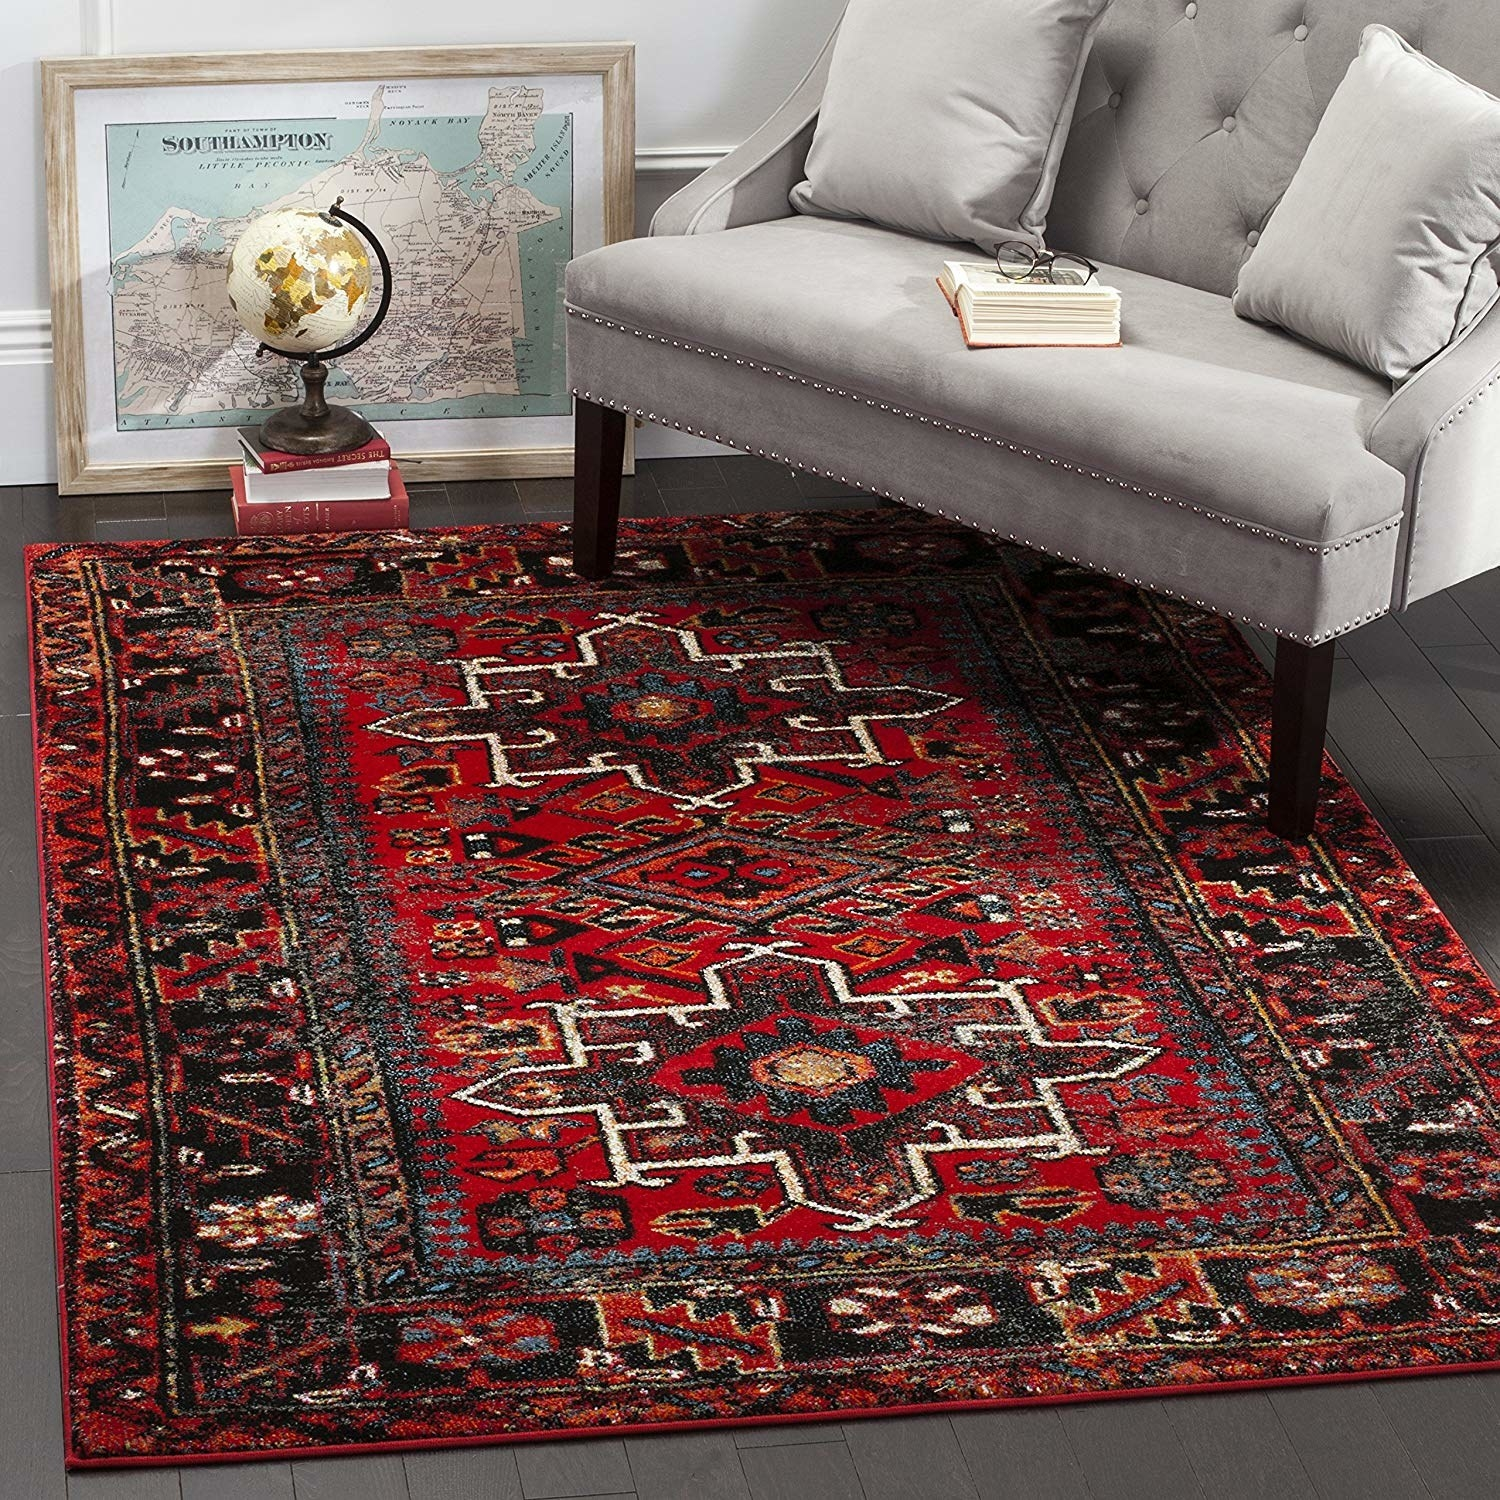 A traditional Turkish patterned red rug placed in a room with gray walls and furniture